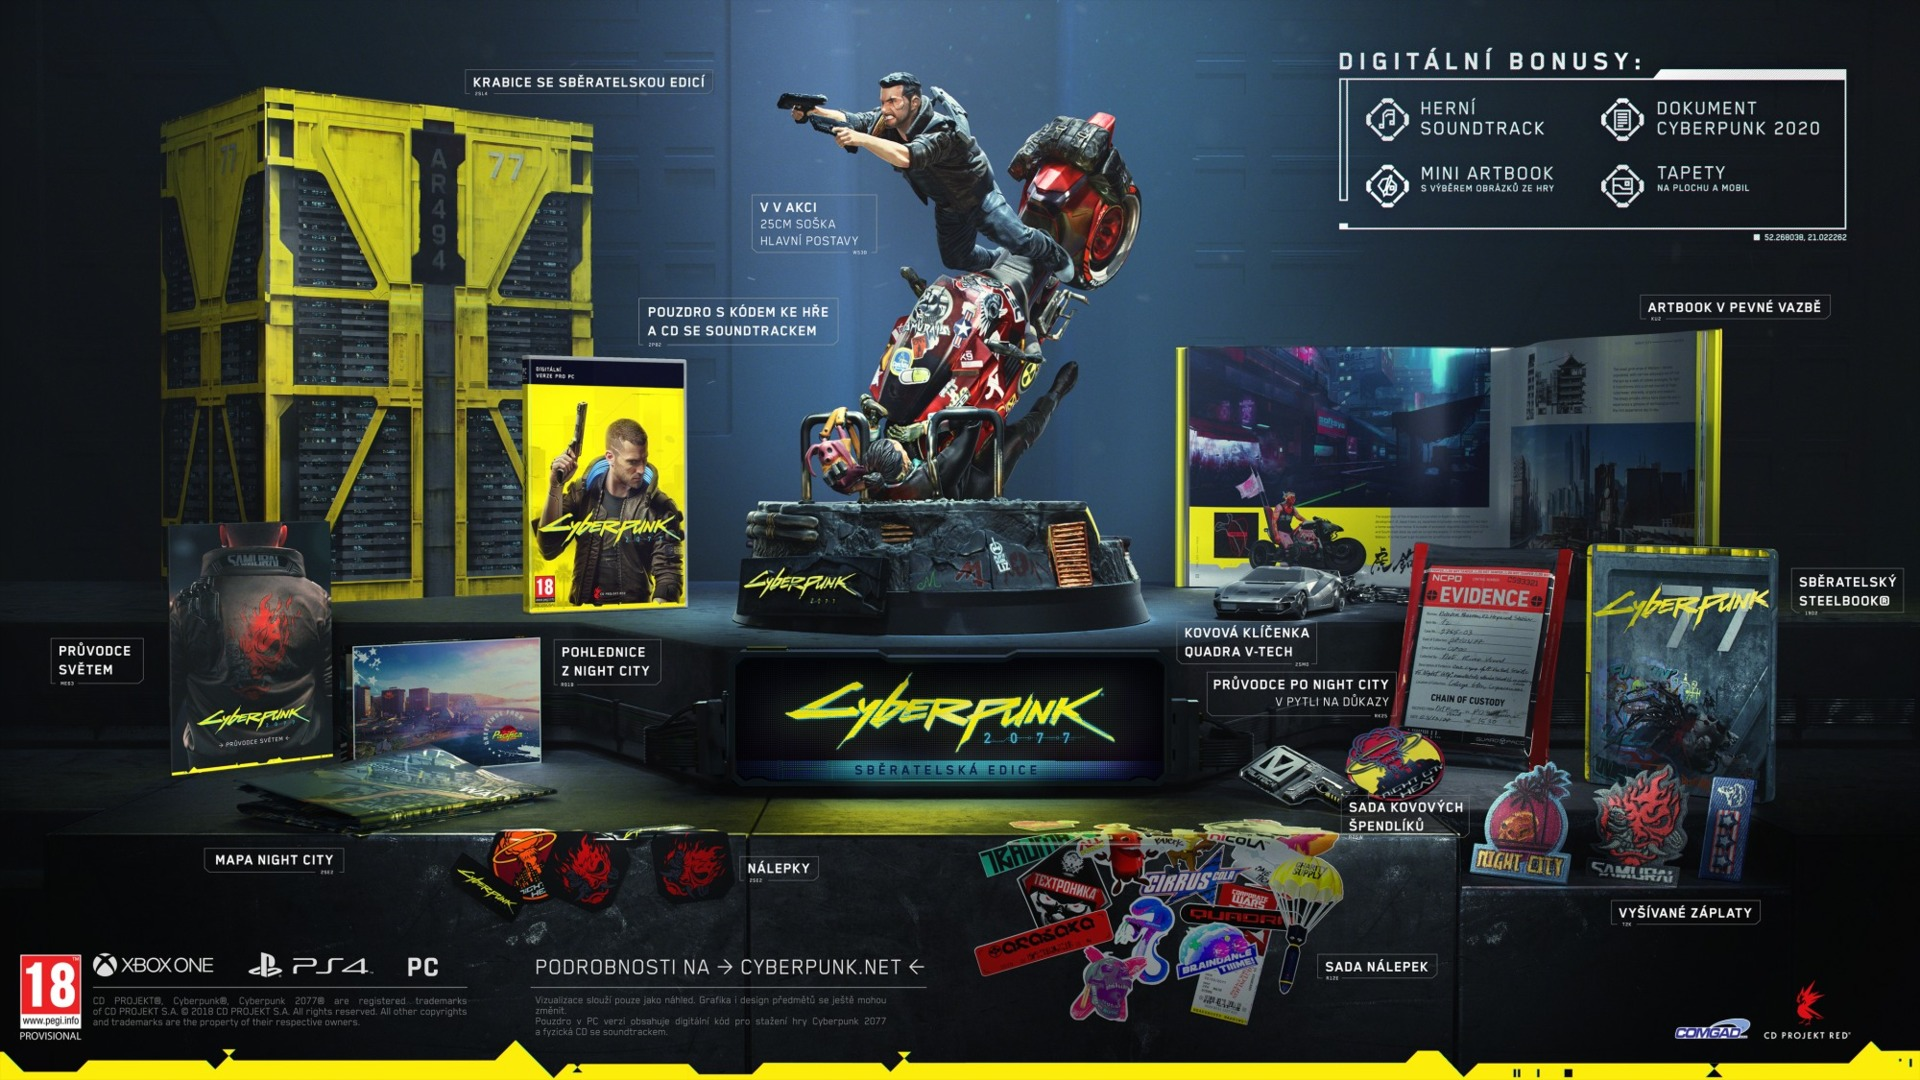 Cyberpunk 2077 - Collectors Edition (PC)